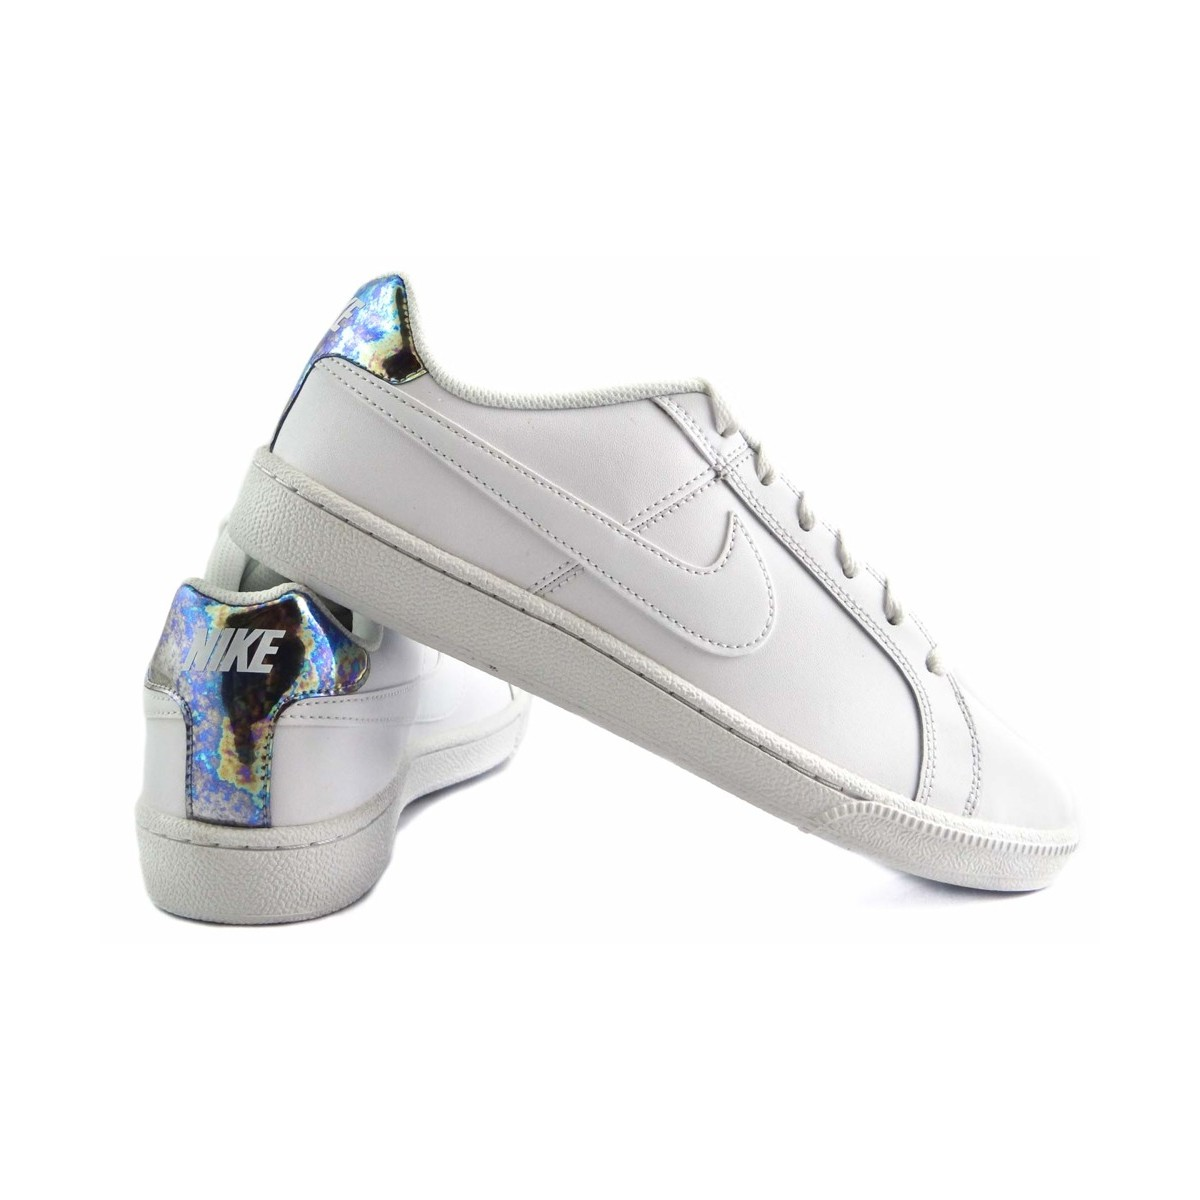 Blancas Royale Zapatillas Royale Court Nike Mujer Nike PFqwRYp